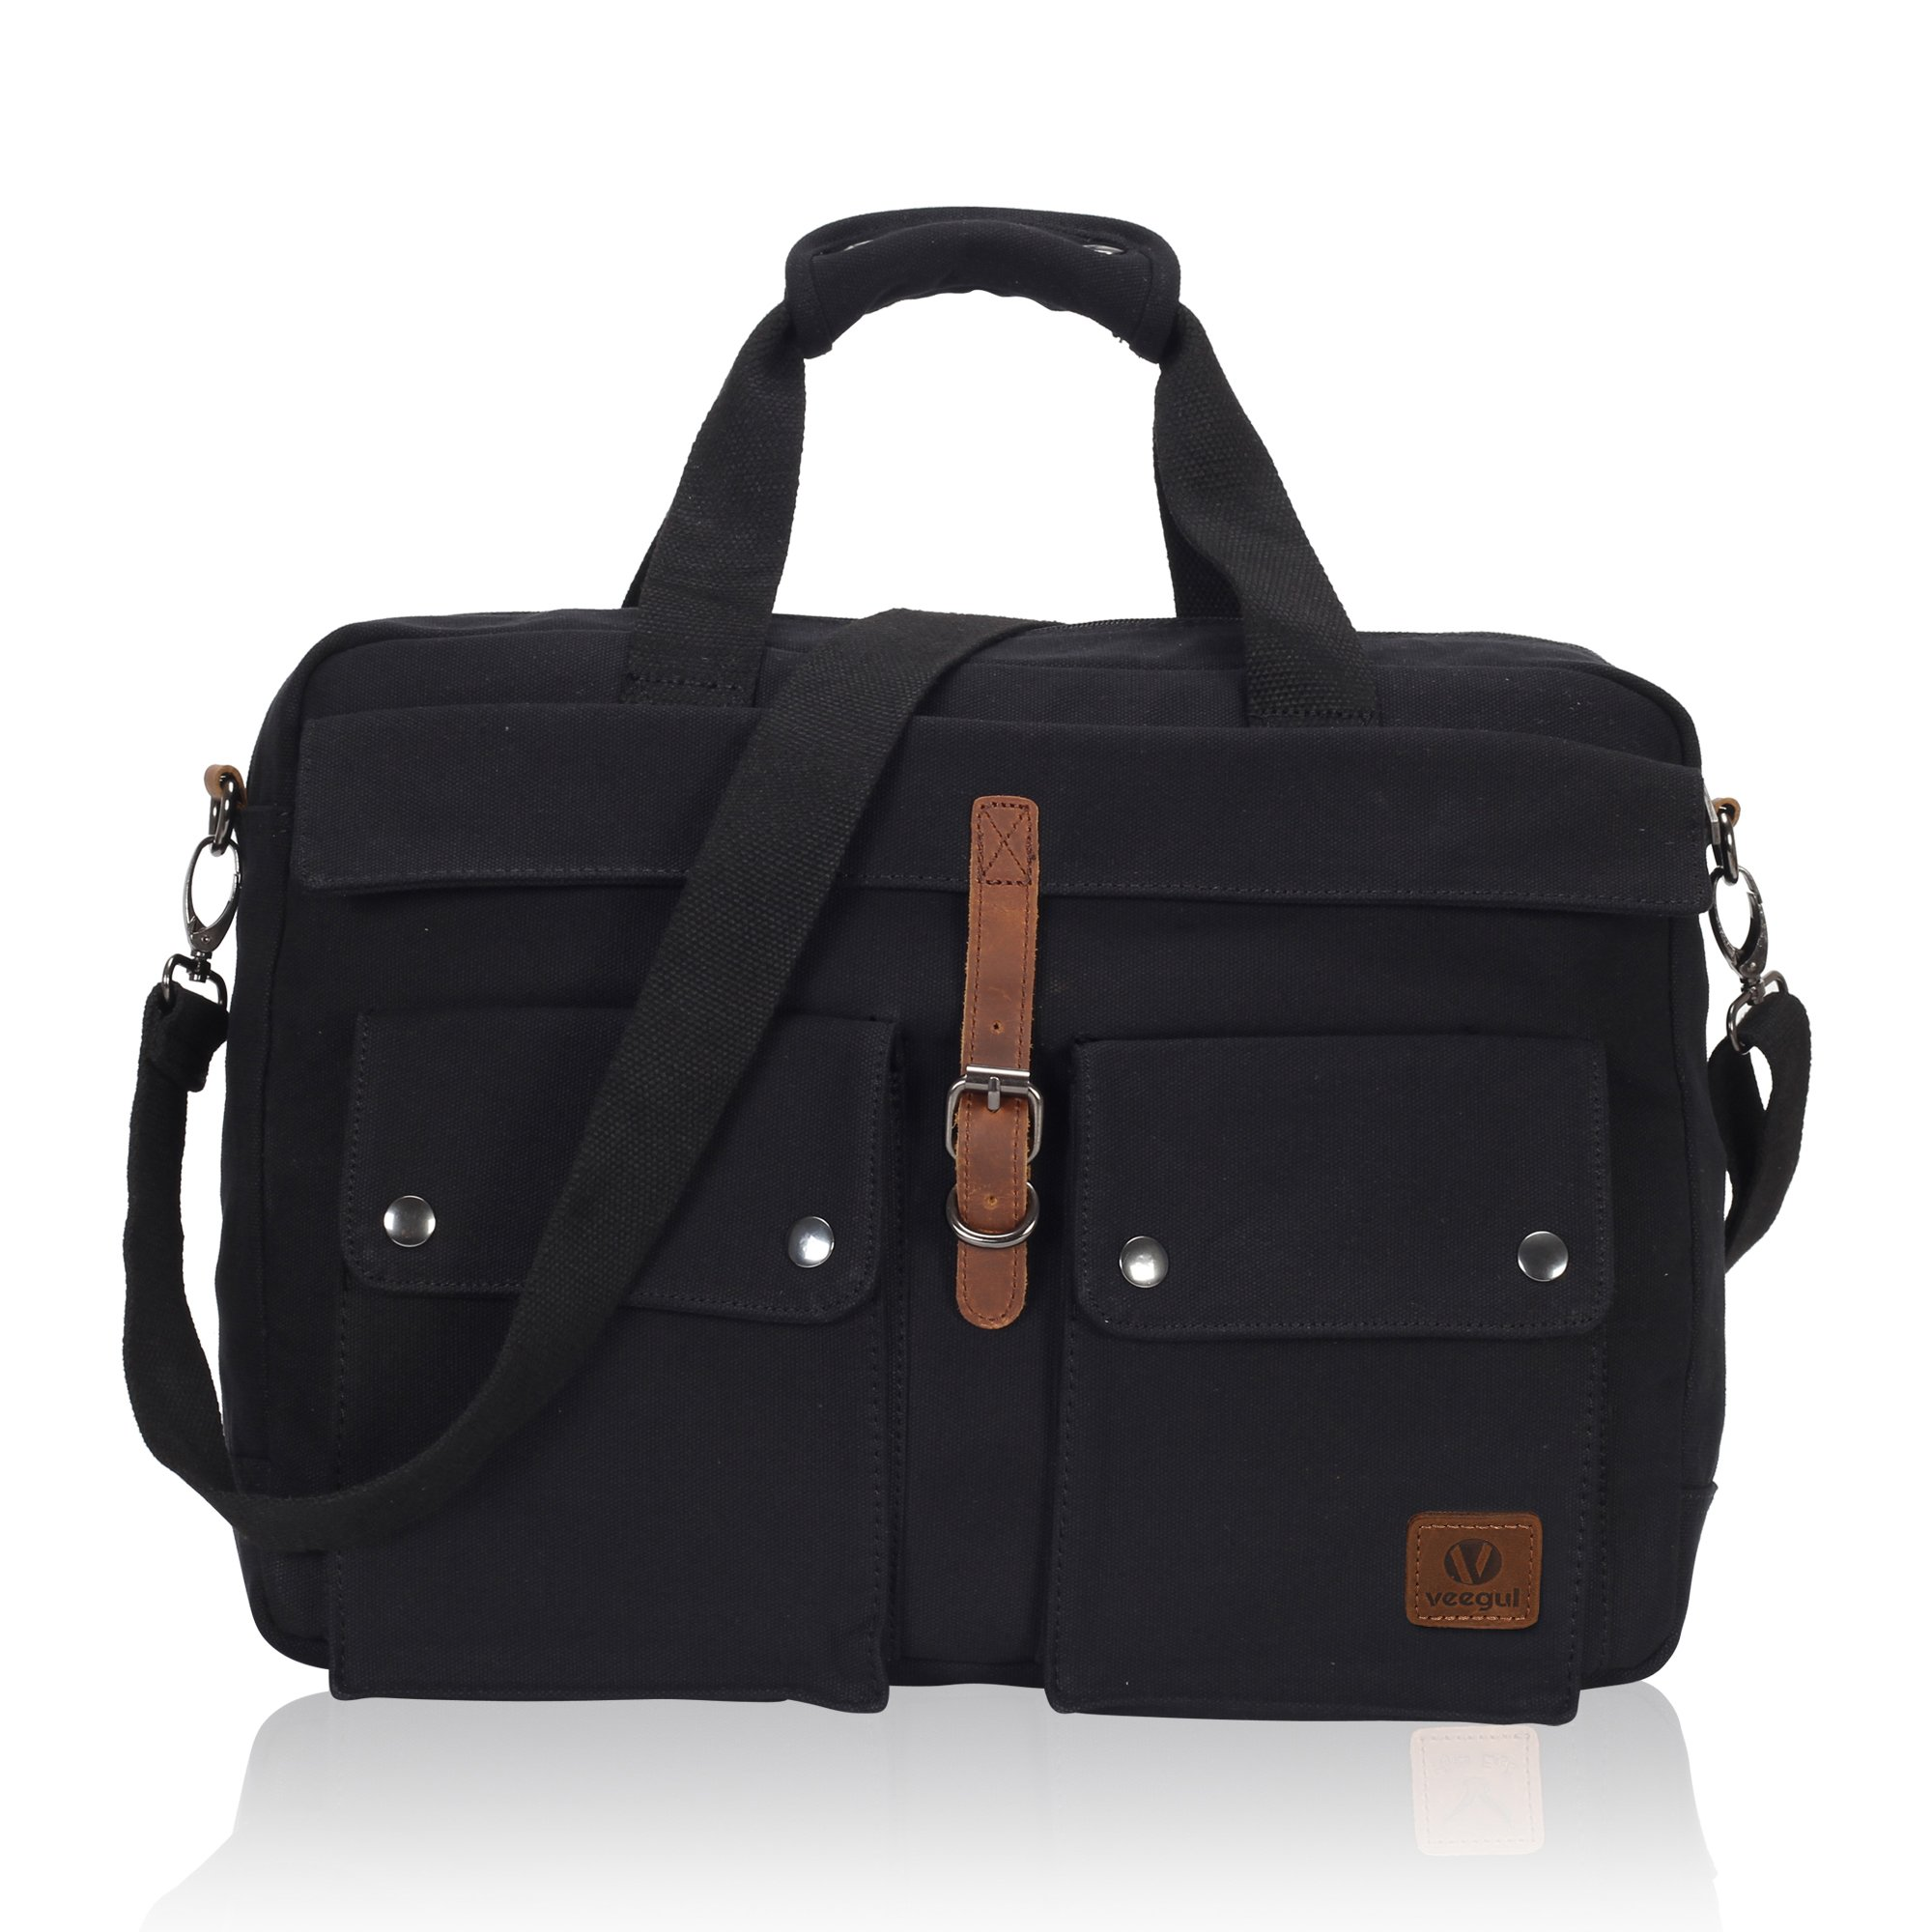 Veegul Multifunctional Canvas Laptop Bag 15.6 inch Black